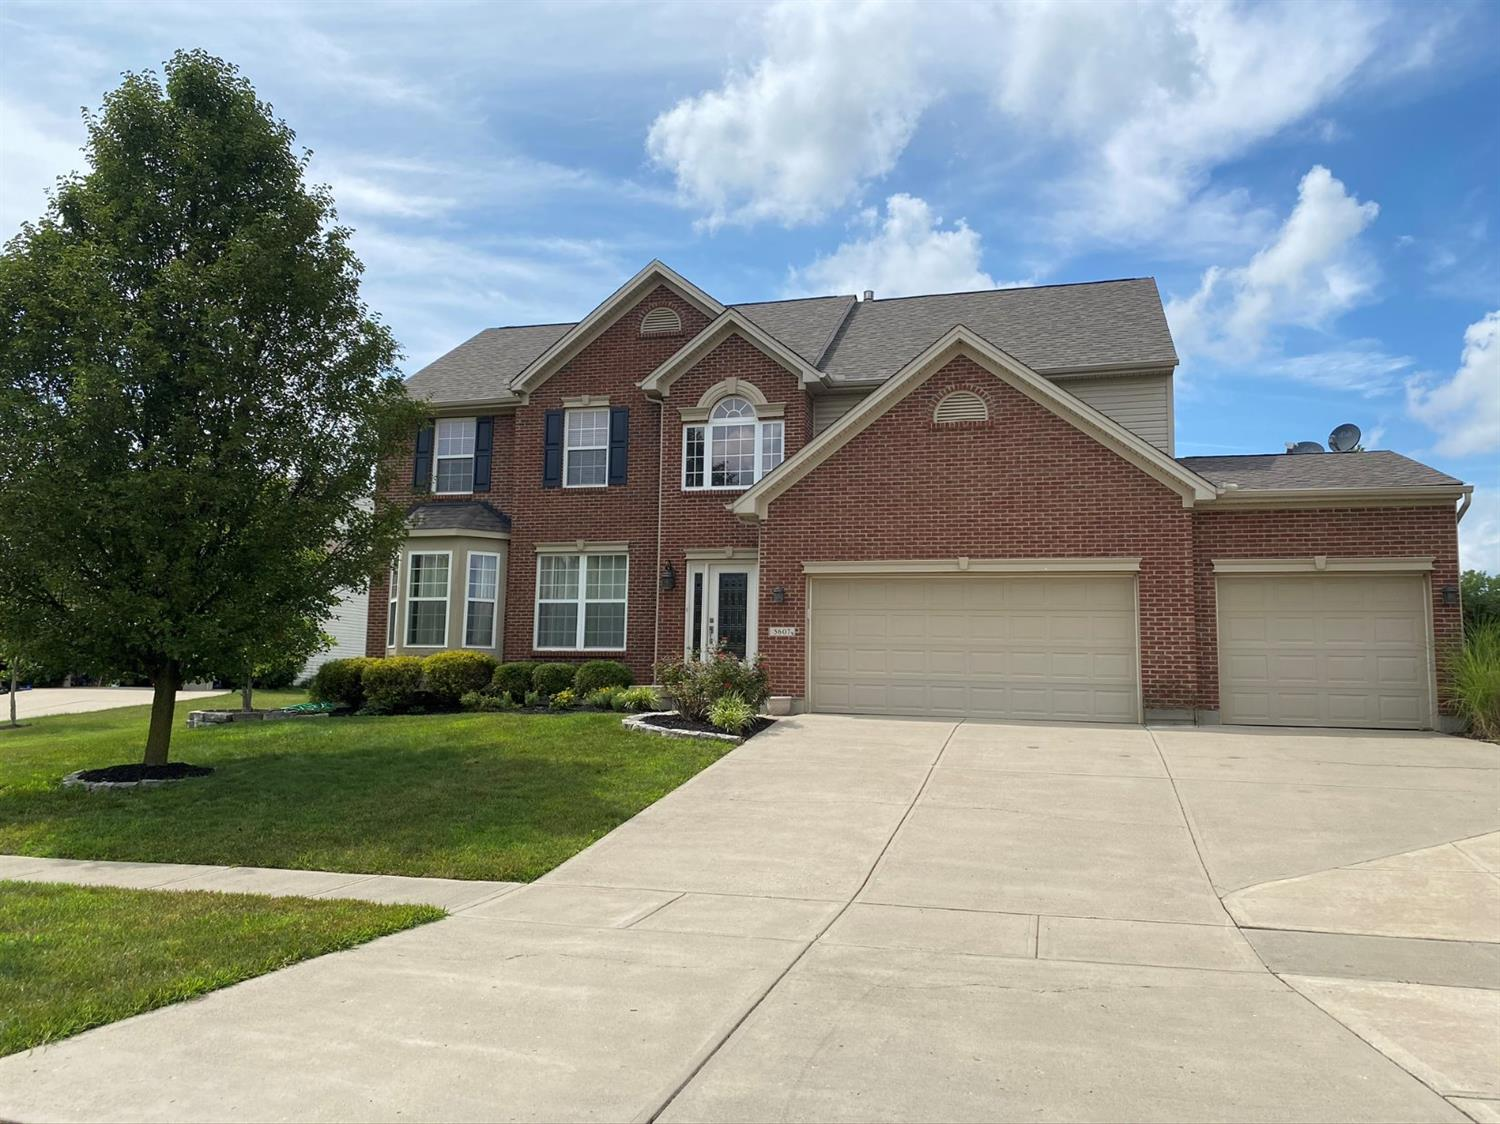 Property for sale at 5607 Creekside Meadows Drive, Liberty Twp,  Ohio 45011